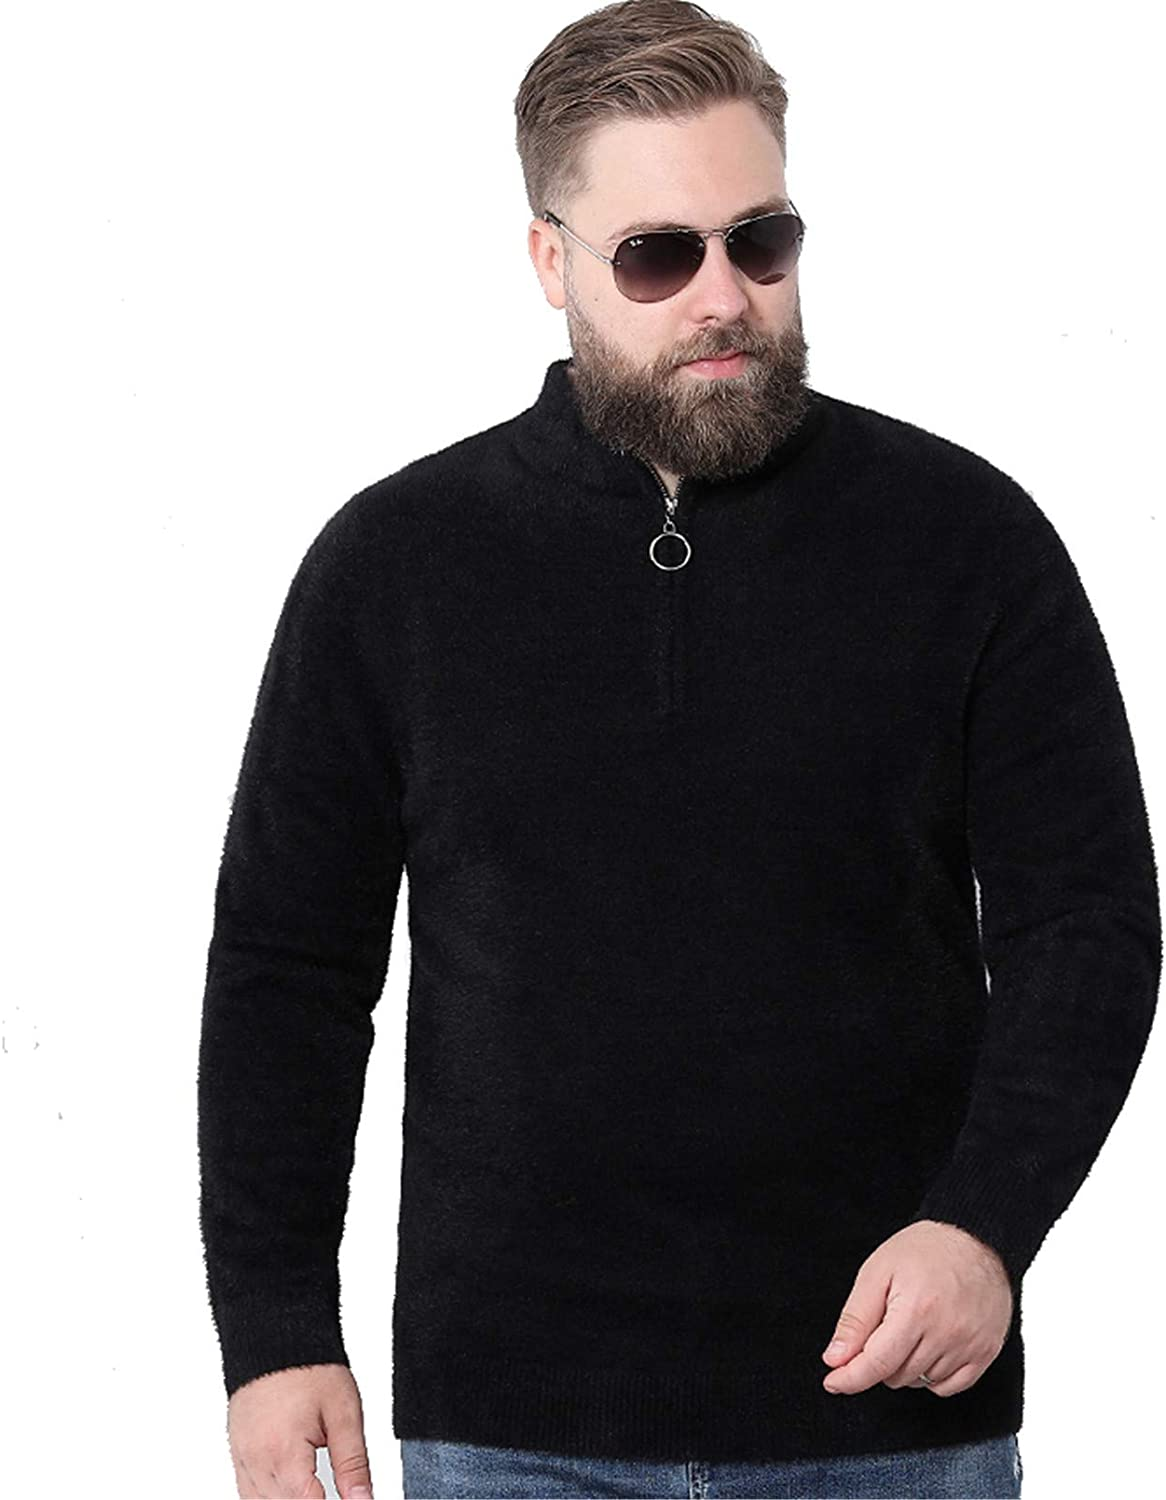 Men's Knitted Pullover Jumpers Thick Sweater Highneck Soft Long Sleeve Fall Winter Cardigans Warm Knitwear Outwear,Black,L